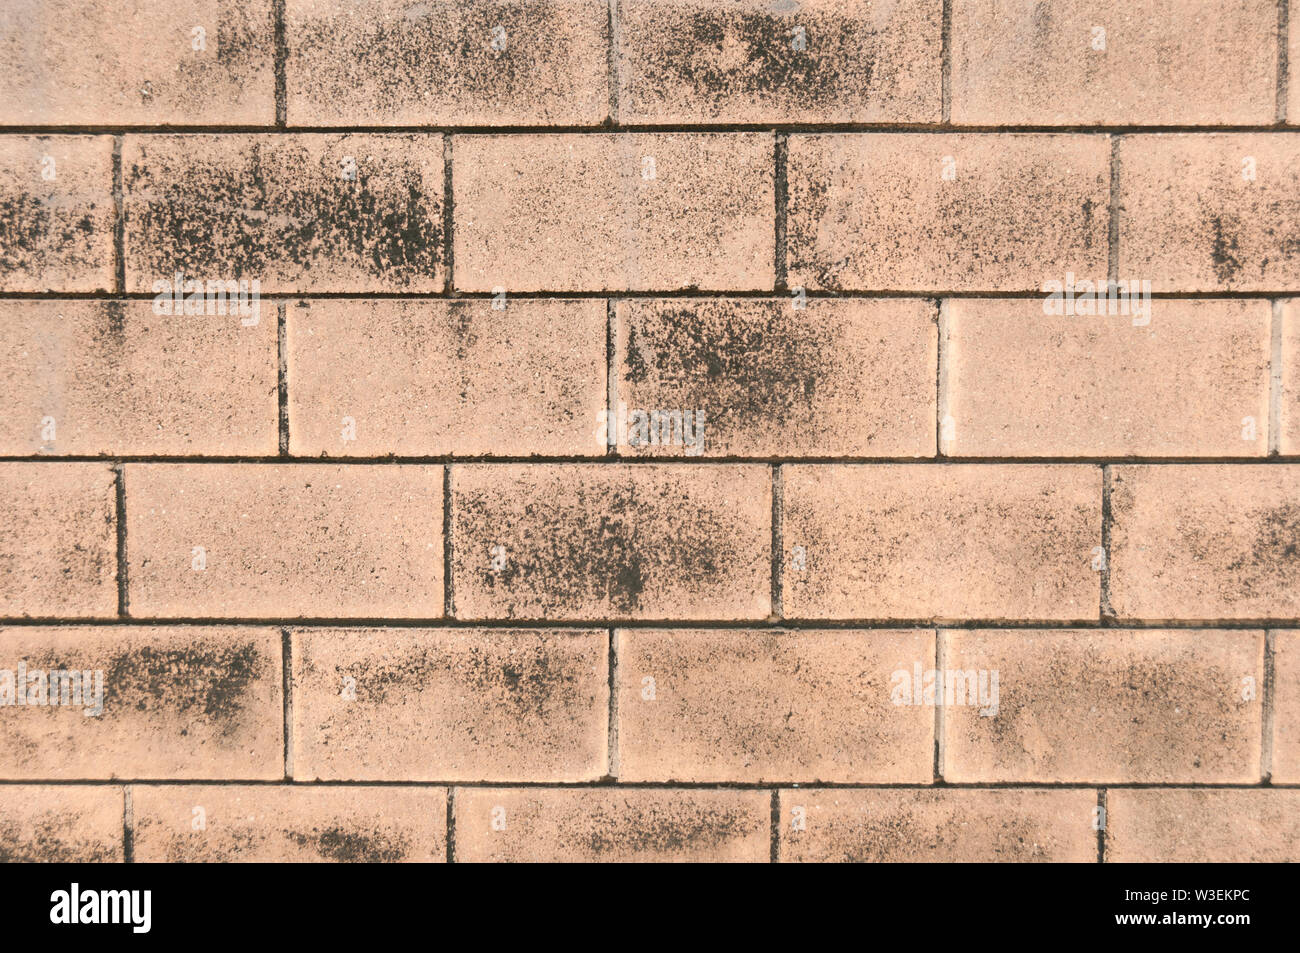 Textured, aged, red brick wall close up pattern for background Stock Photo